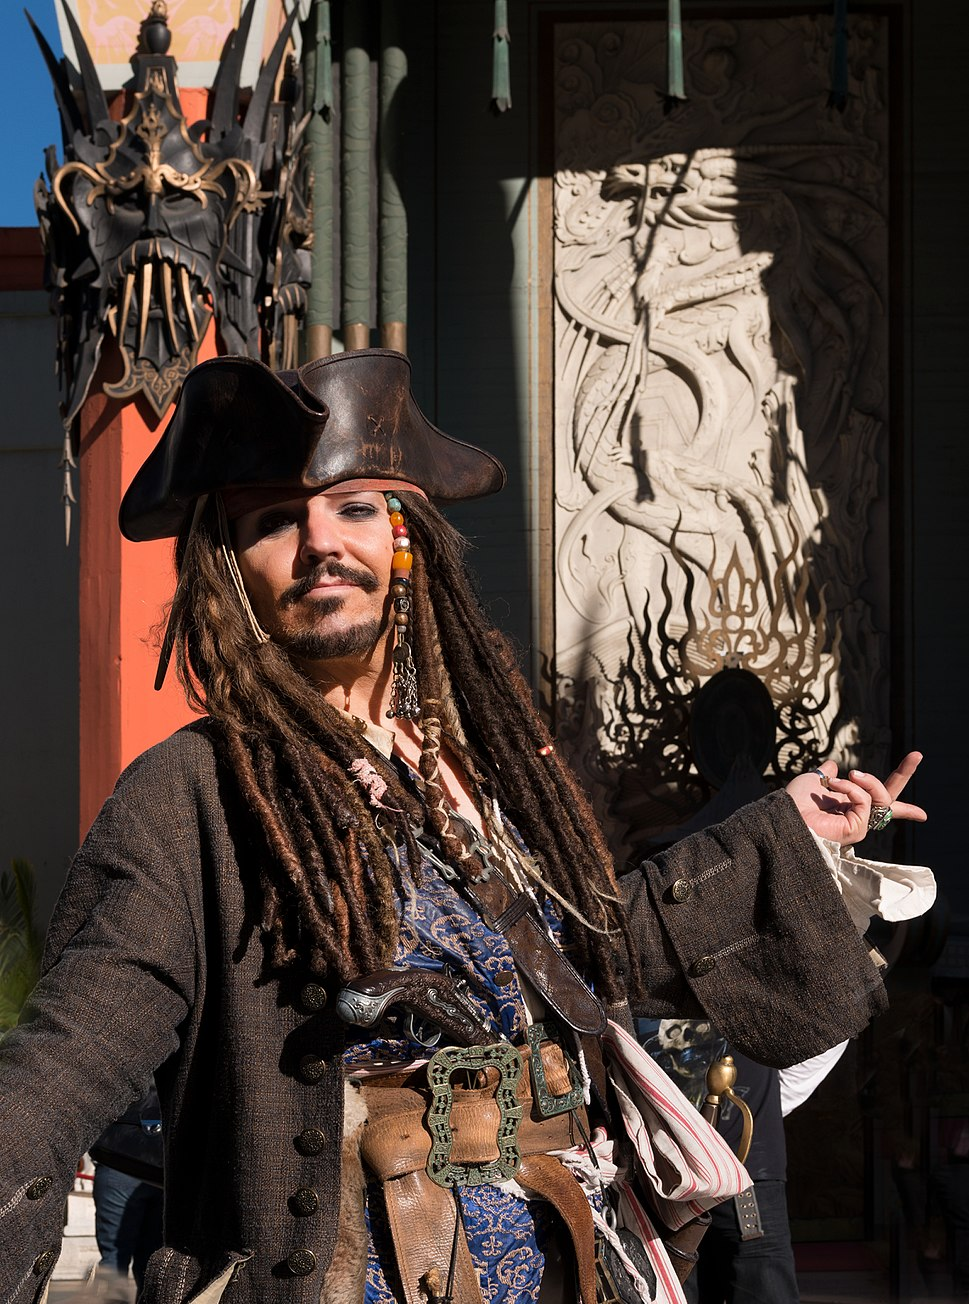 Dale Clark poses as Johnny Depp, in Pirates of the Caribbean, 24391